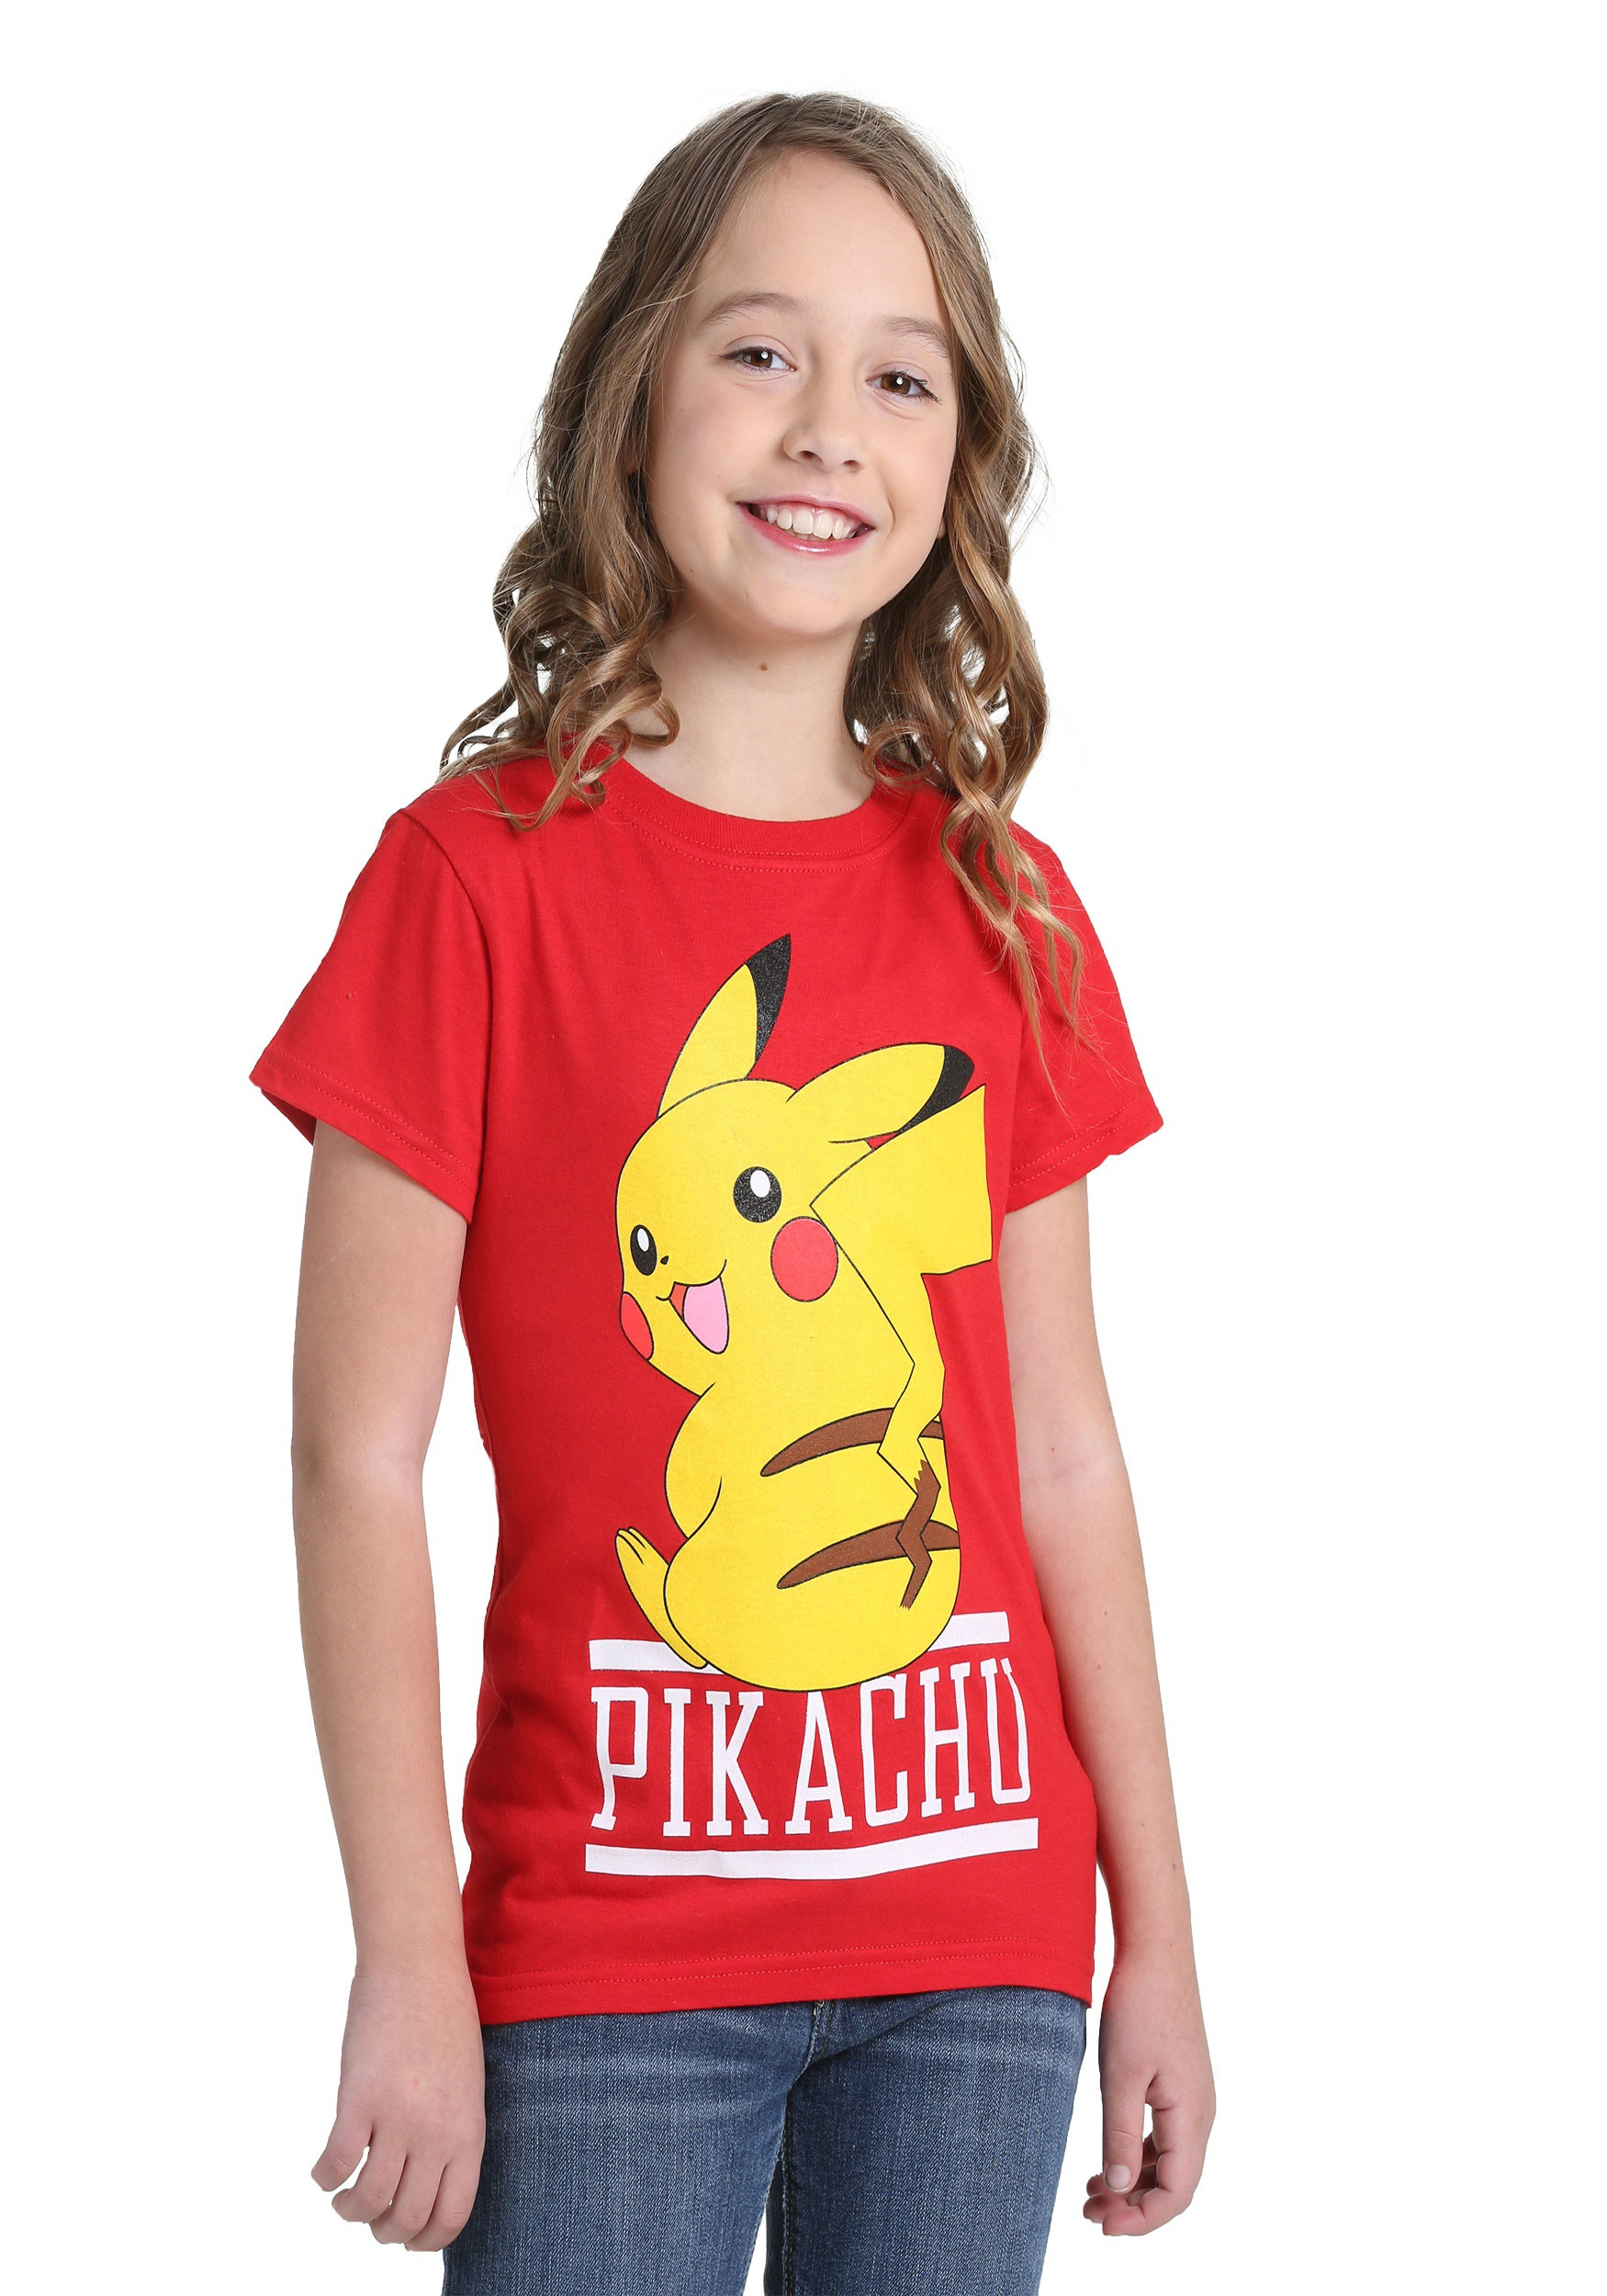 Shop for girls red shirt online at Target. Free shipping on purchases over $35 and 5% Off W/ REDcard· Same Day Store Pick-Up· Free Shipping $35+· Everyday Savings1,,+ followers on Twitter.